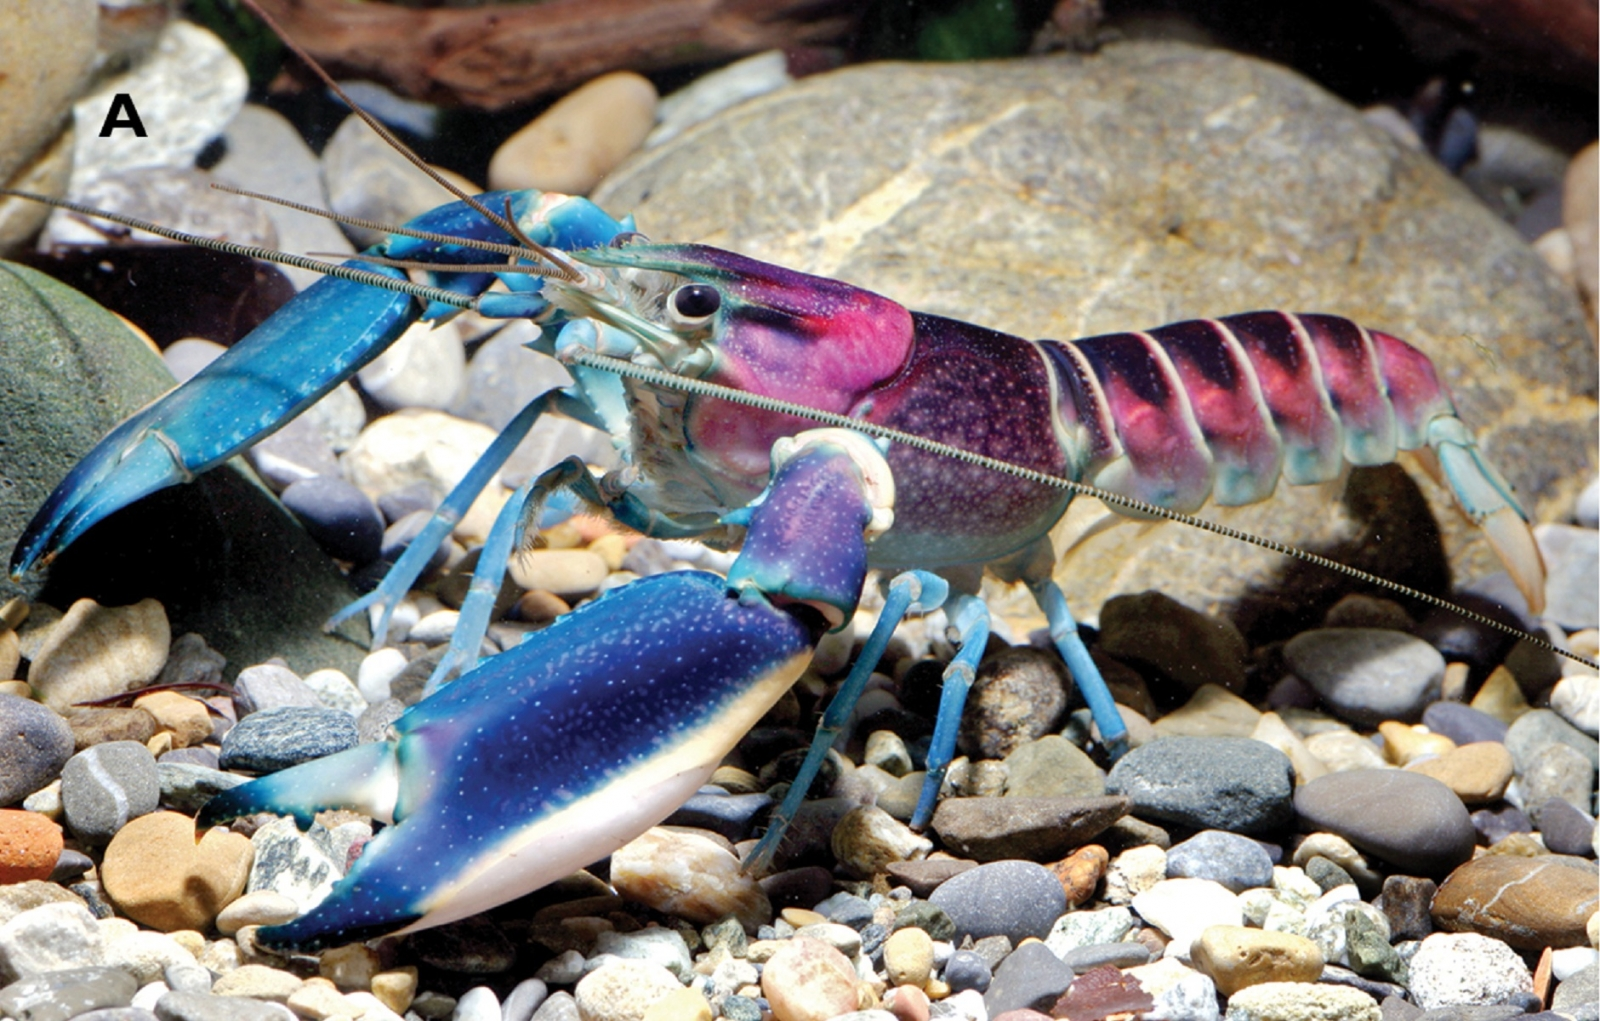 colourful new crayfish